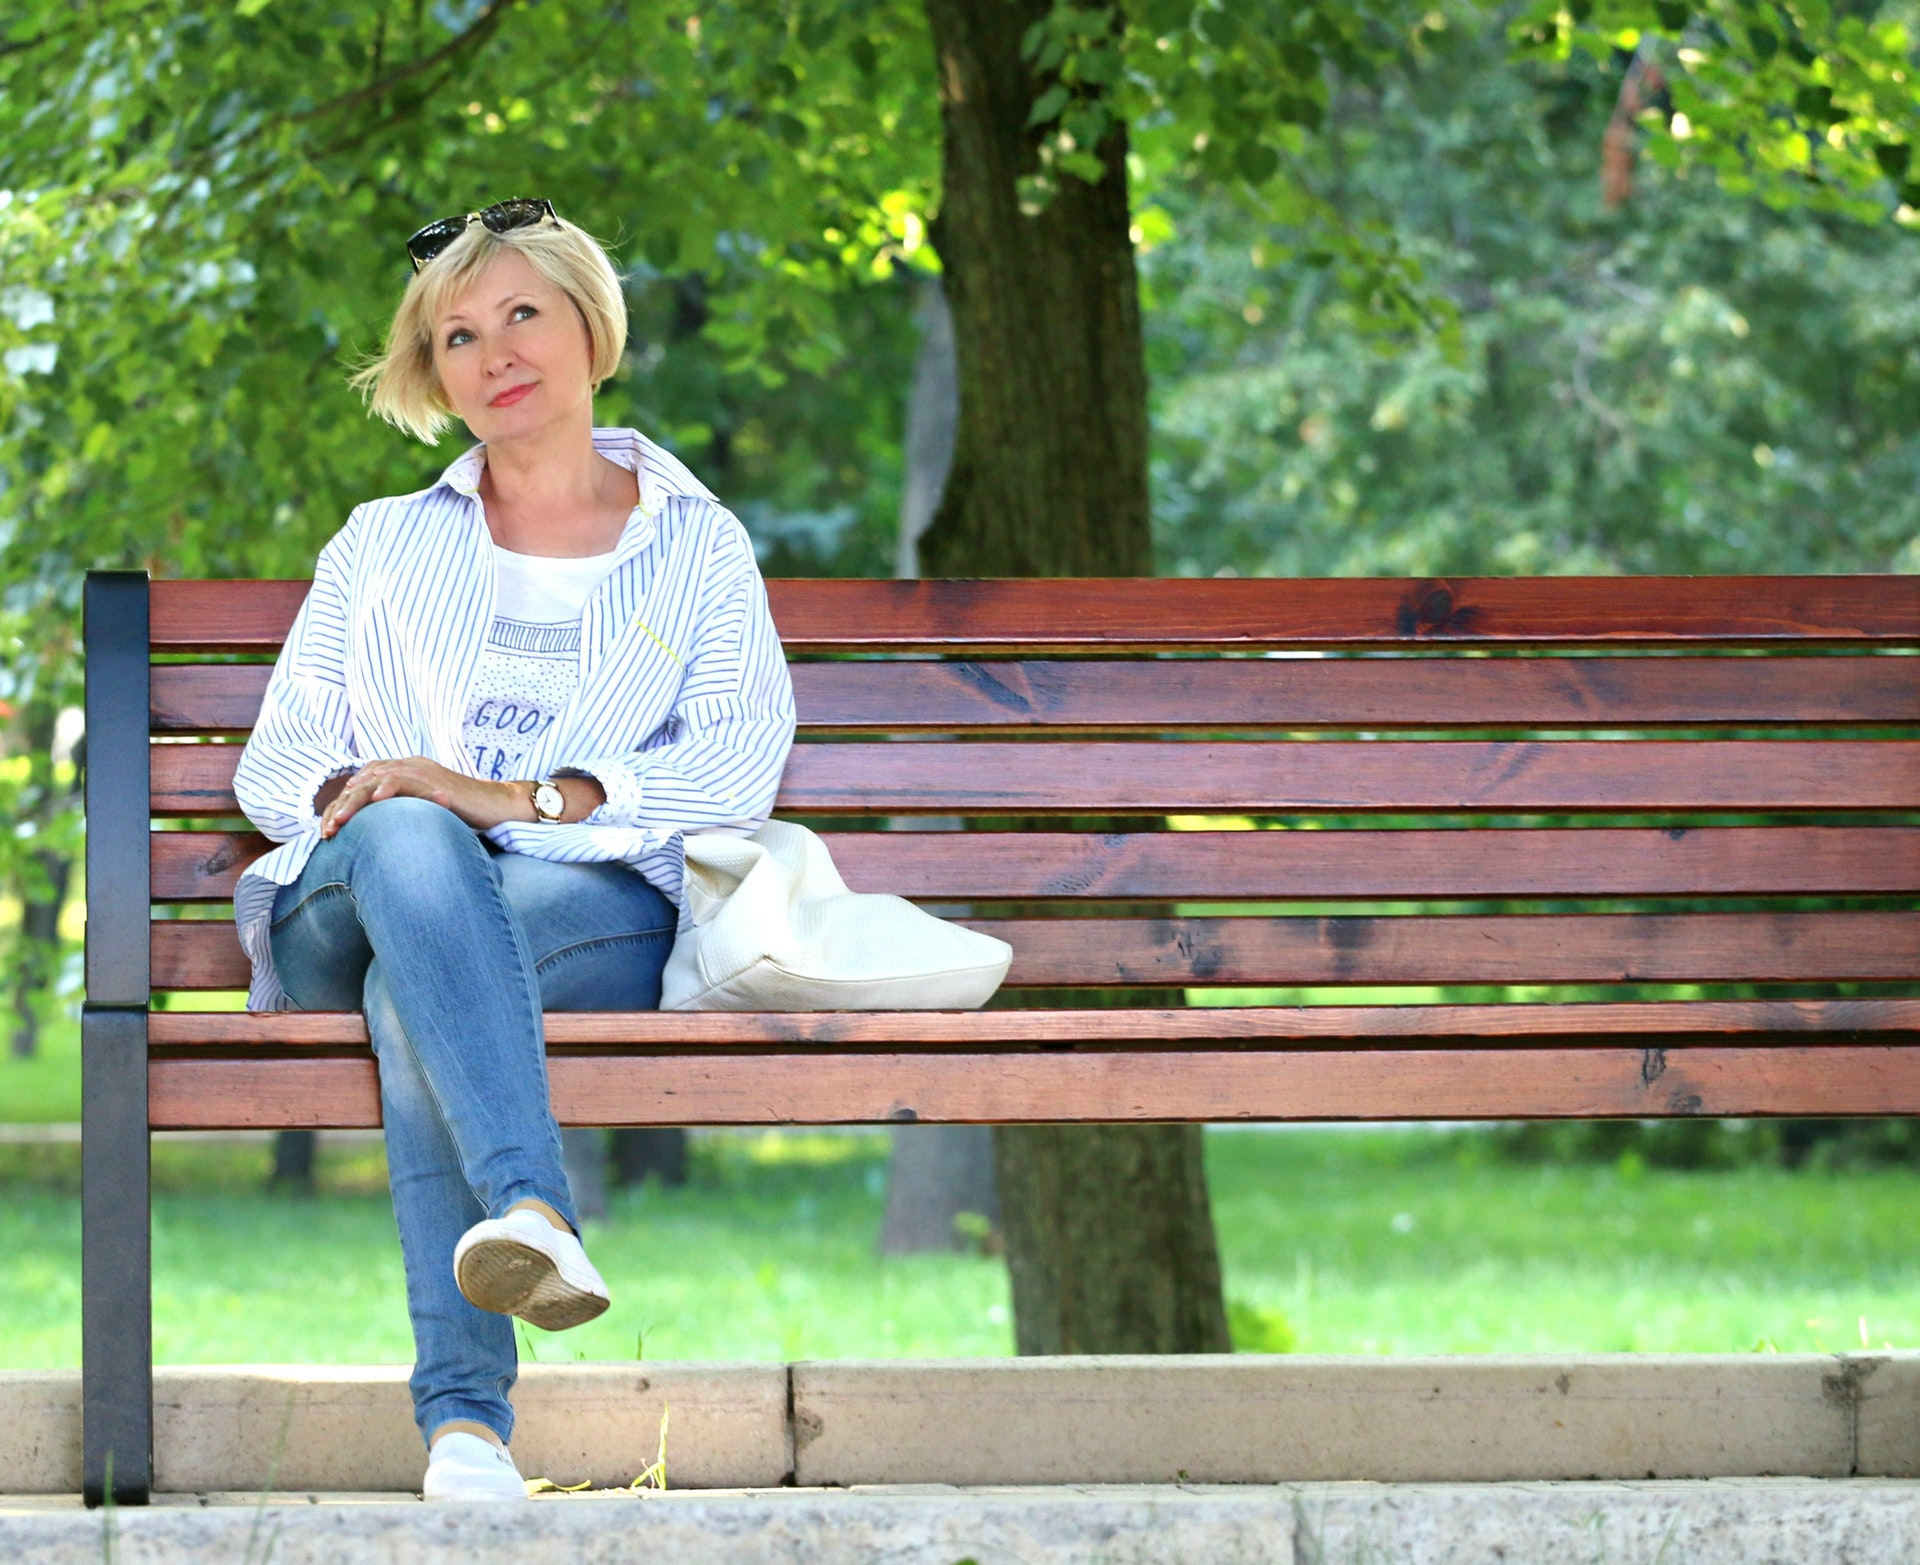 Middle-Aged Woman on Park Bench